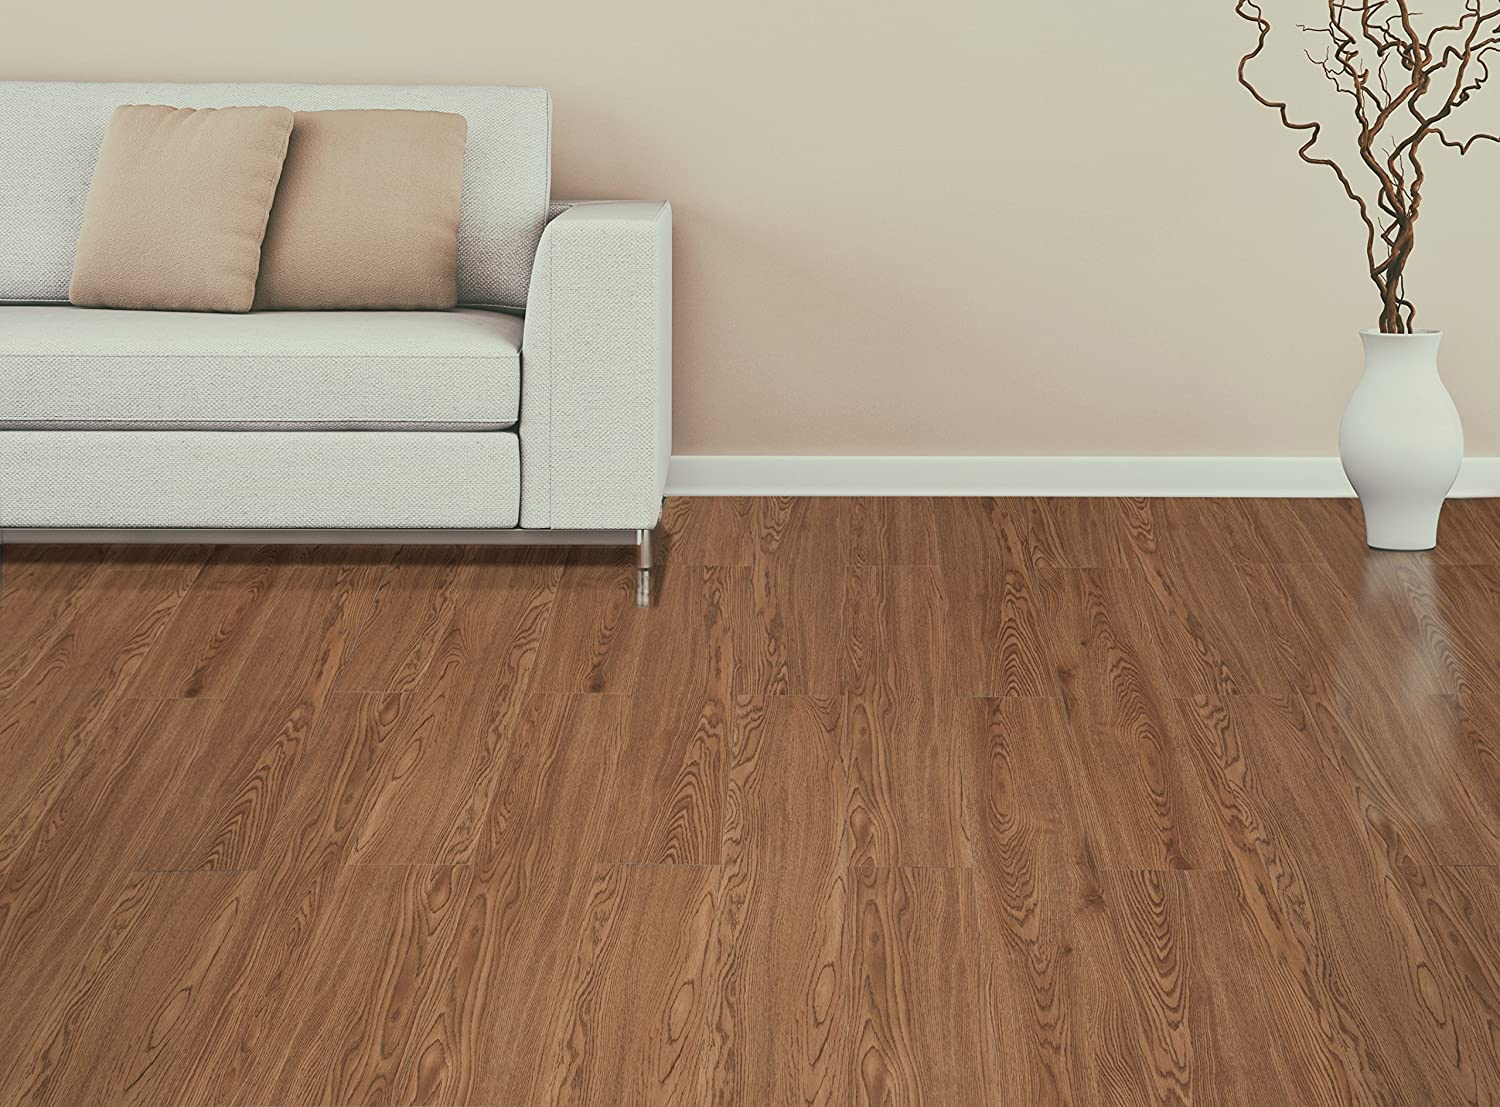 Achim home furnishings vfp20mh10 tivoli ii peel n stick vinyl achim home furnishings vfp20mh10 tivoli ii peel n stick vinyl floor planks 10 pack mahogany 6 x 36 amazon dailygadgetfo Choice Image